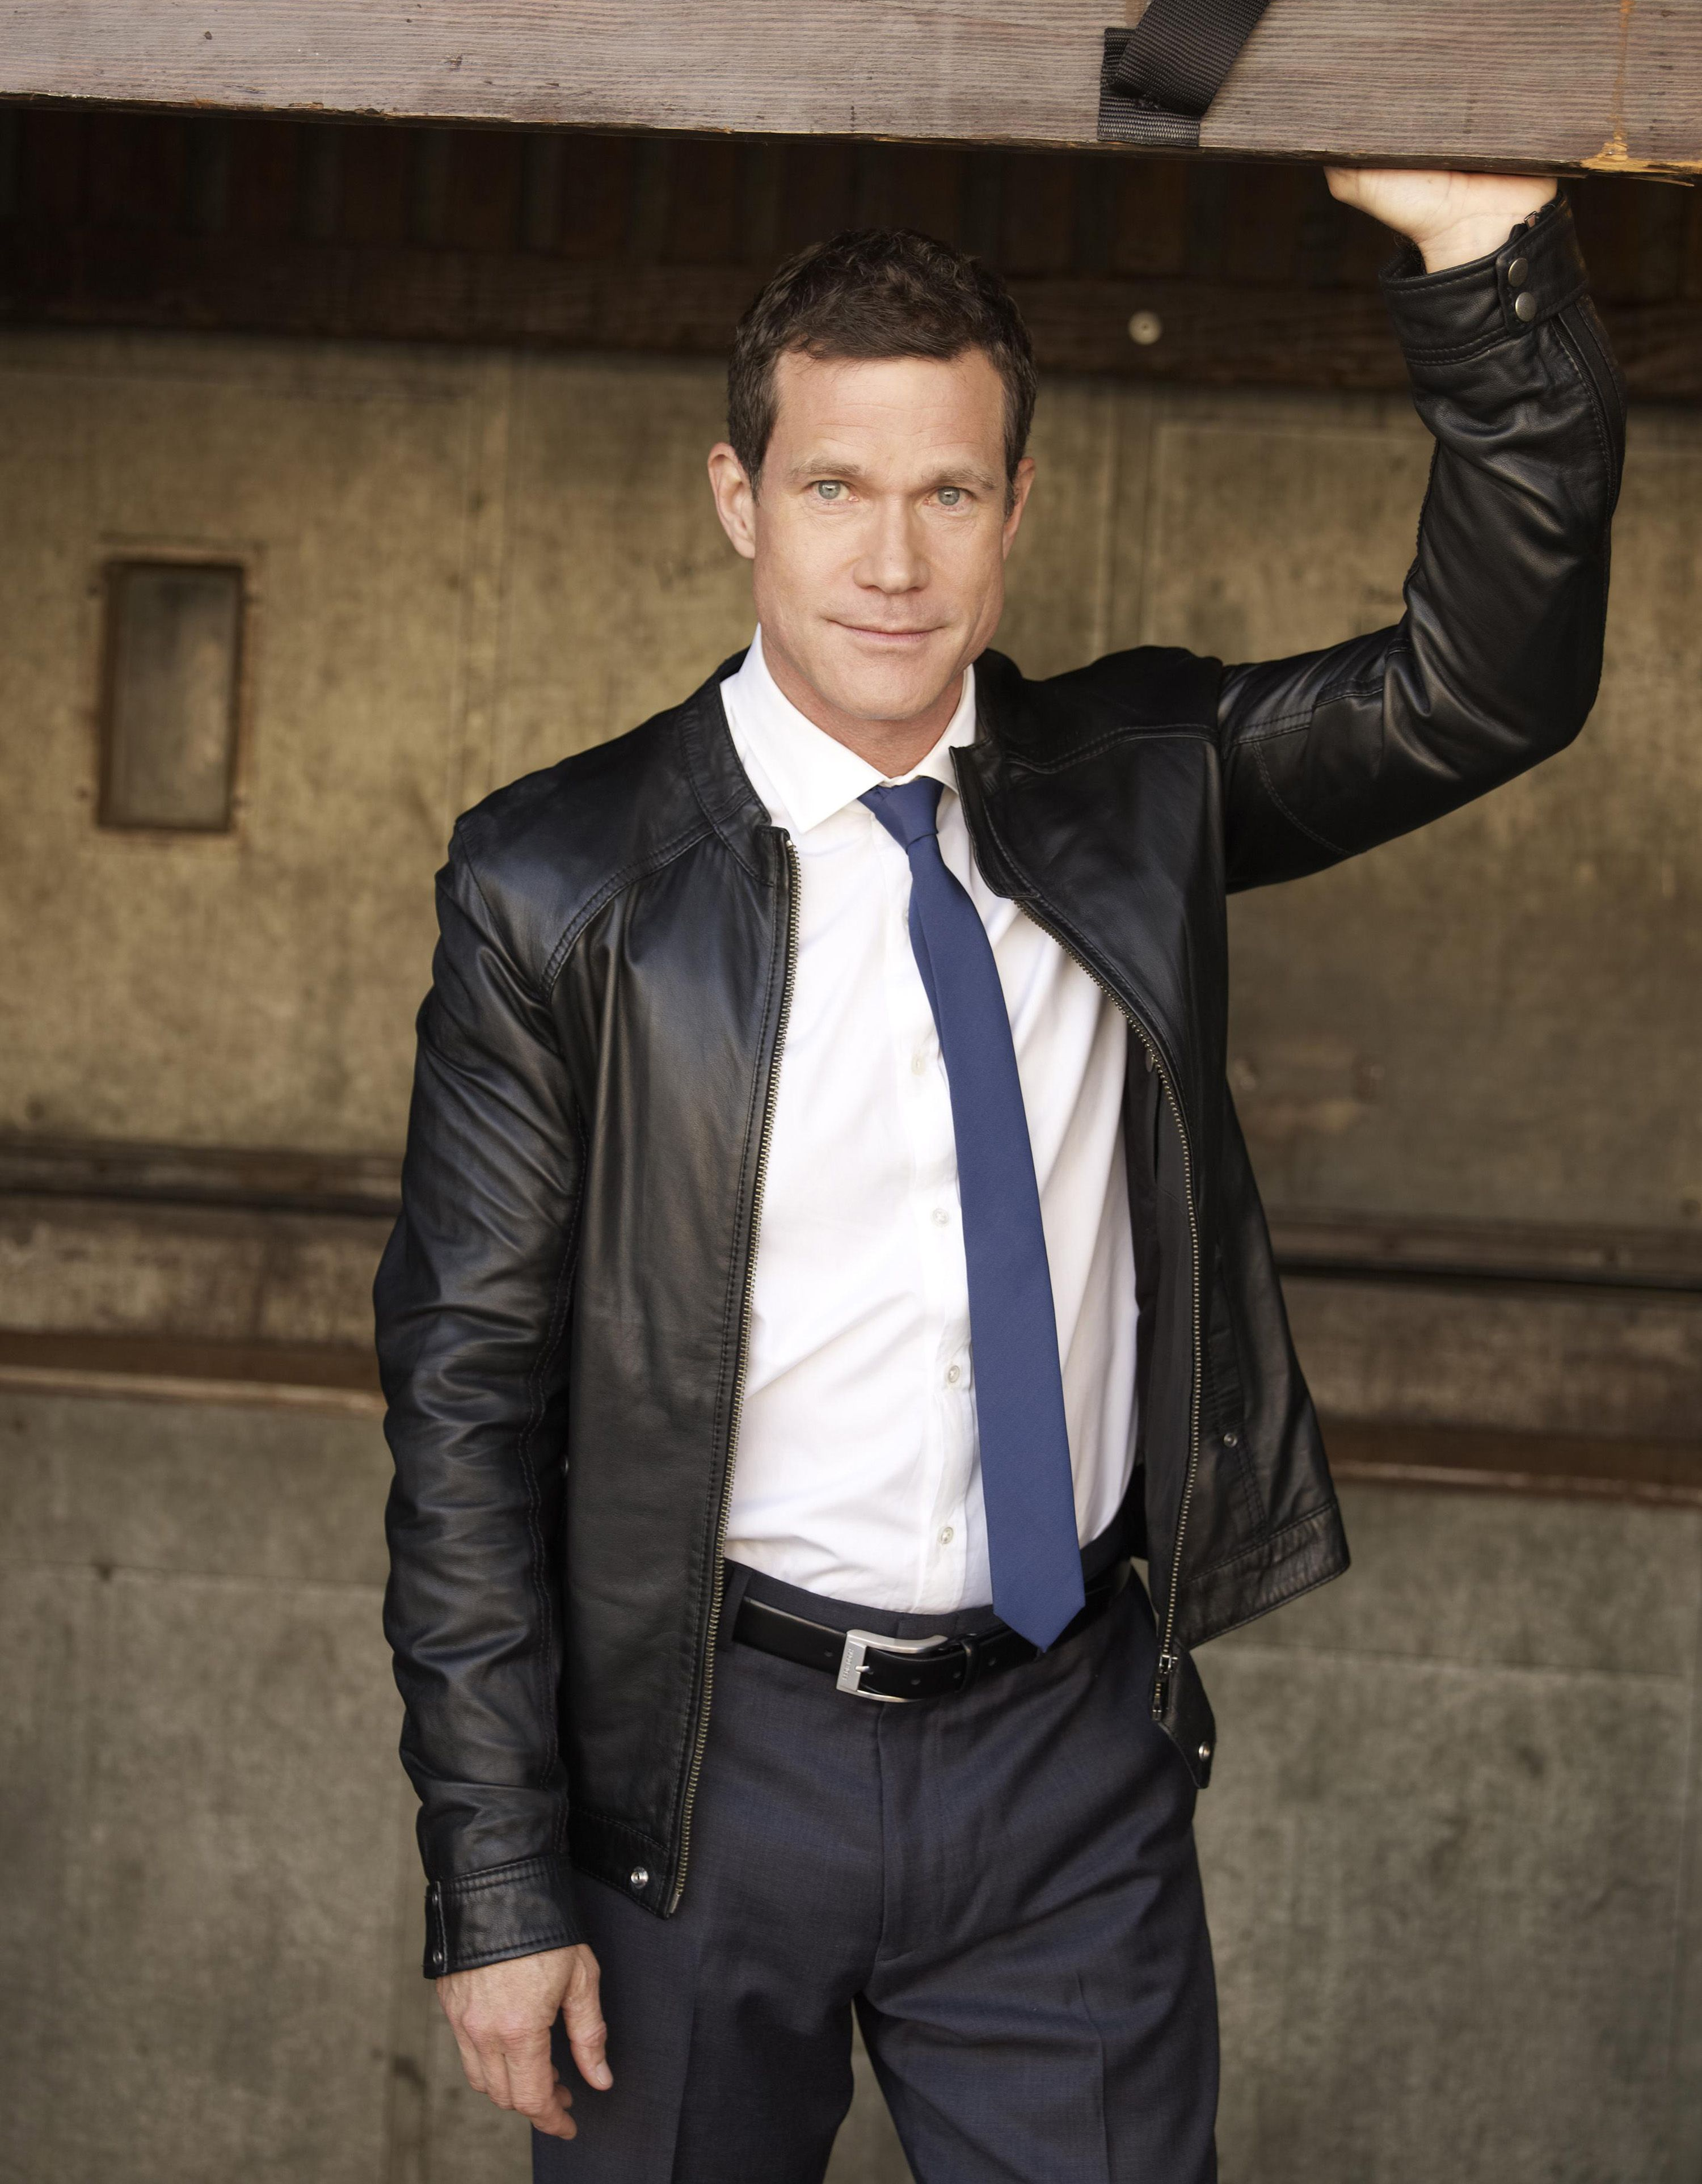 dylan walsh actordylan walsh nip tuck, dylan walsh, dylan walsh instagram, dylan walsh facebook, dylan walsh actor, dylan walsh height, dylan walsh wiki, dylan walsh imdb, dylan walsh net worth, dylan walsh unforgettable, dylan walsh leslie bourque, dylan walsh twitter, dylan walsh shirtless, dylan walsh filmographie, dylan walsh leaving unforgettable, dylan walsh gay, dylan walsh motocross, dylan walsh 90210, dylan walsh bodybuilding, dylan walsh ncis new orleans